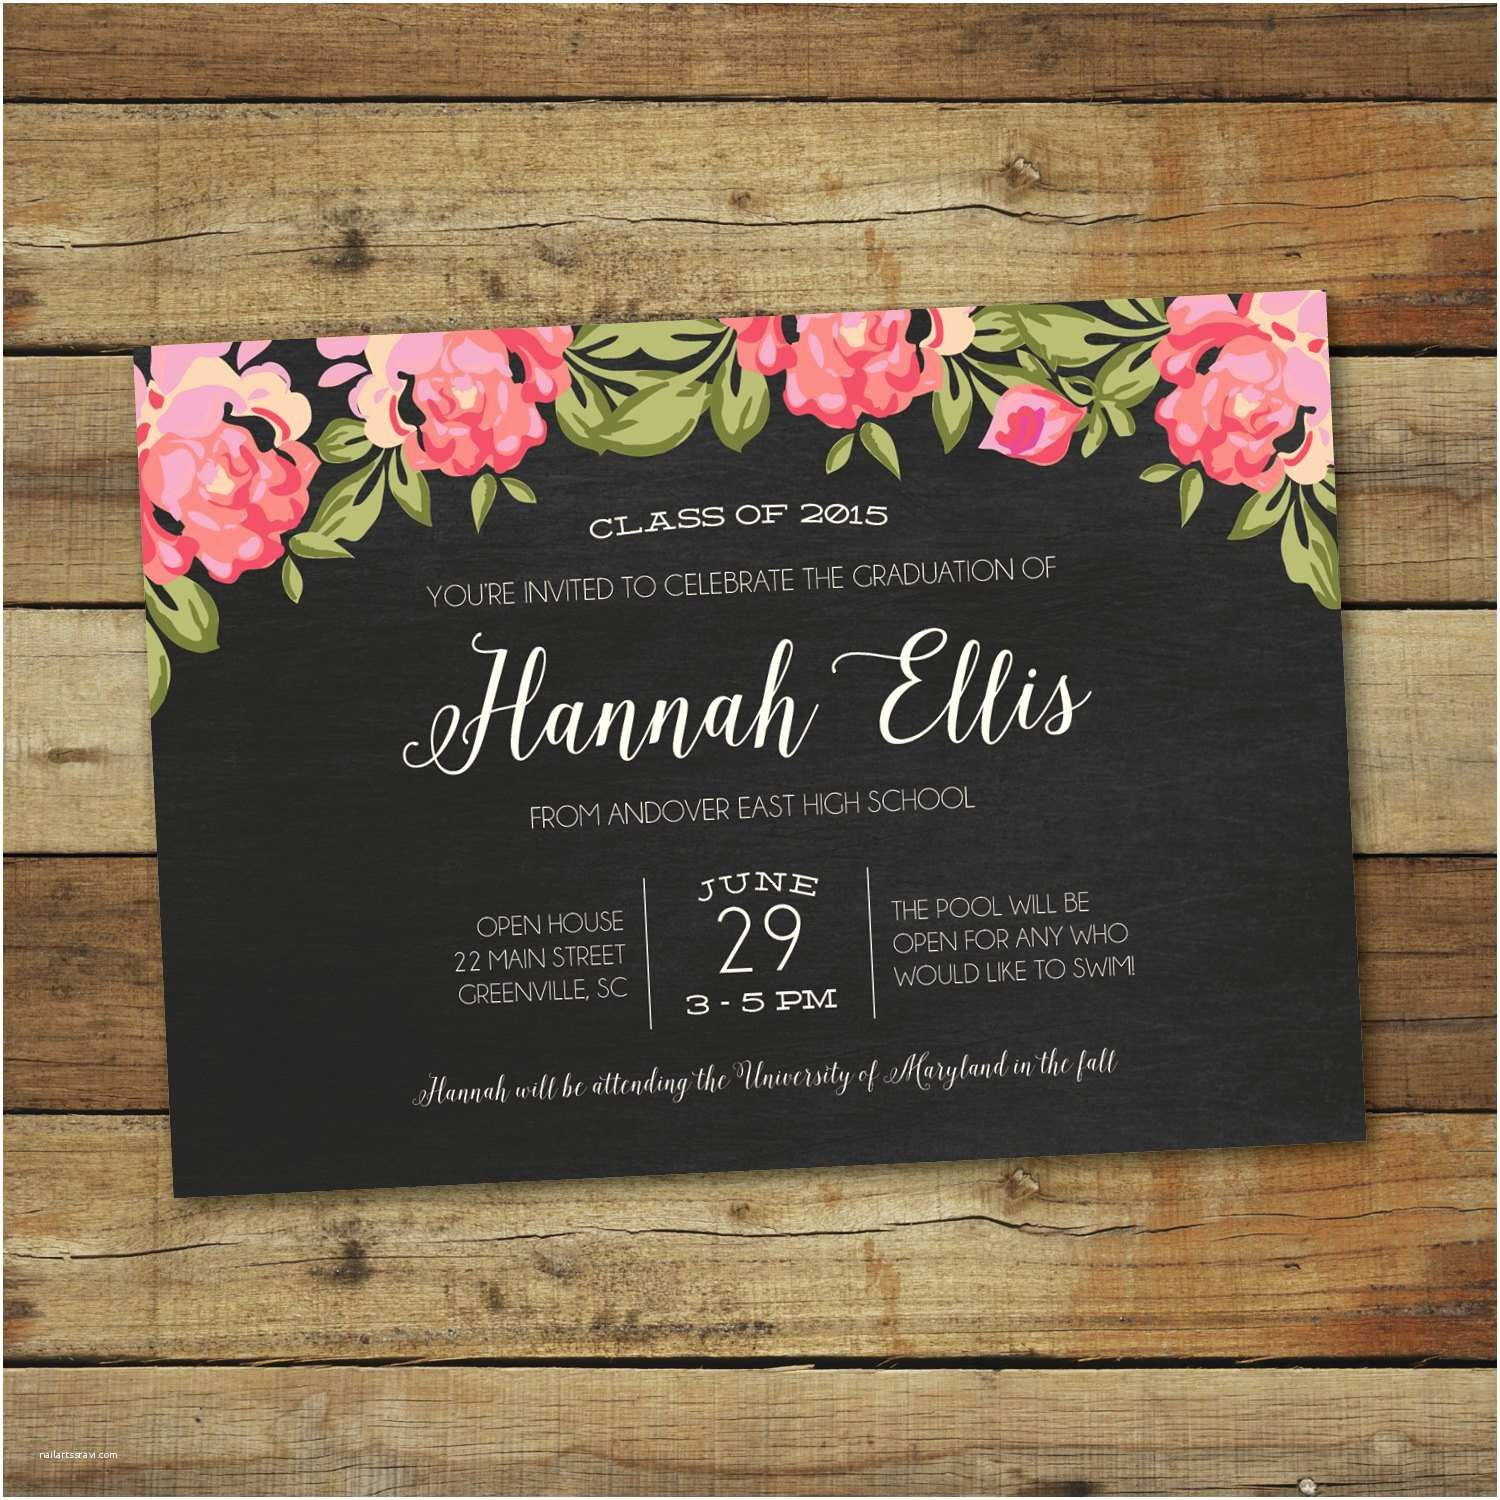 High School Graduation Invitations Graduation Invitation Graduation Invitation Templates